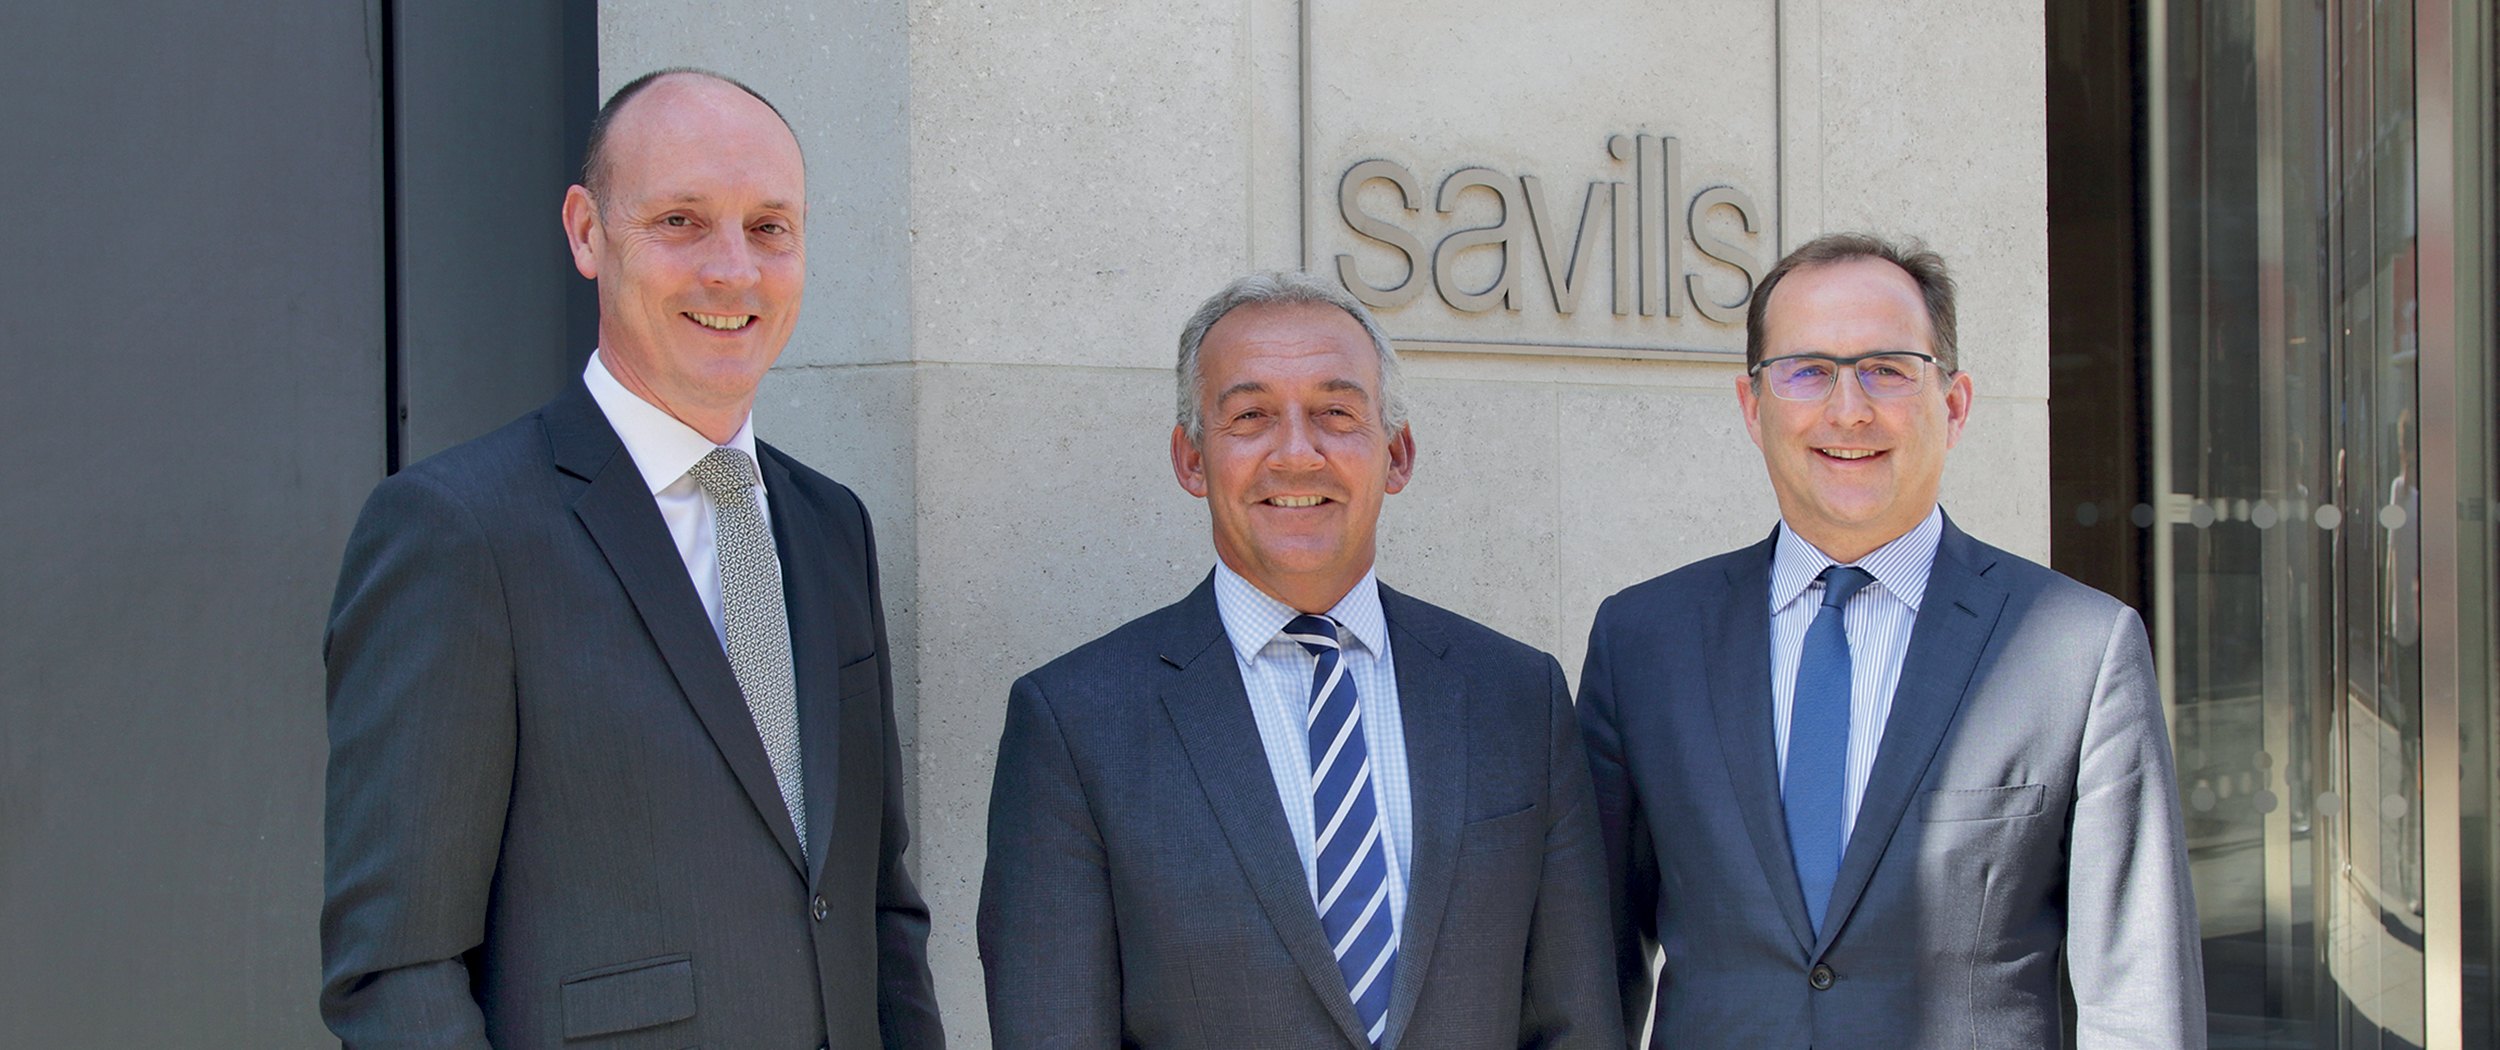 Savills UK management_pix1.jpg